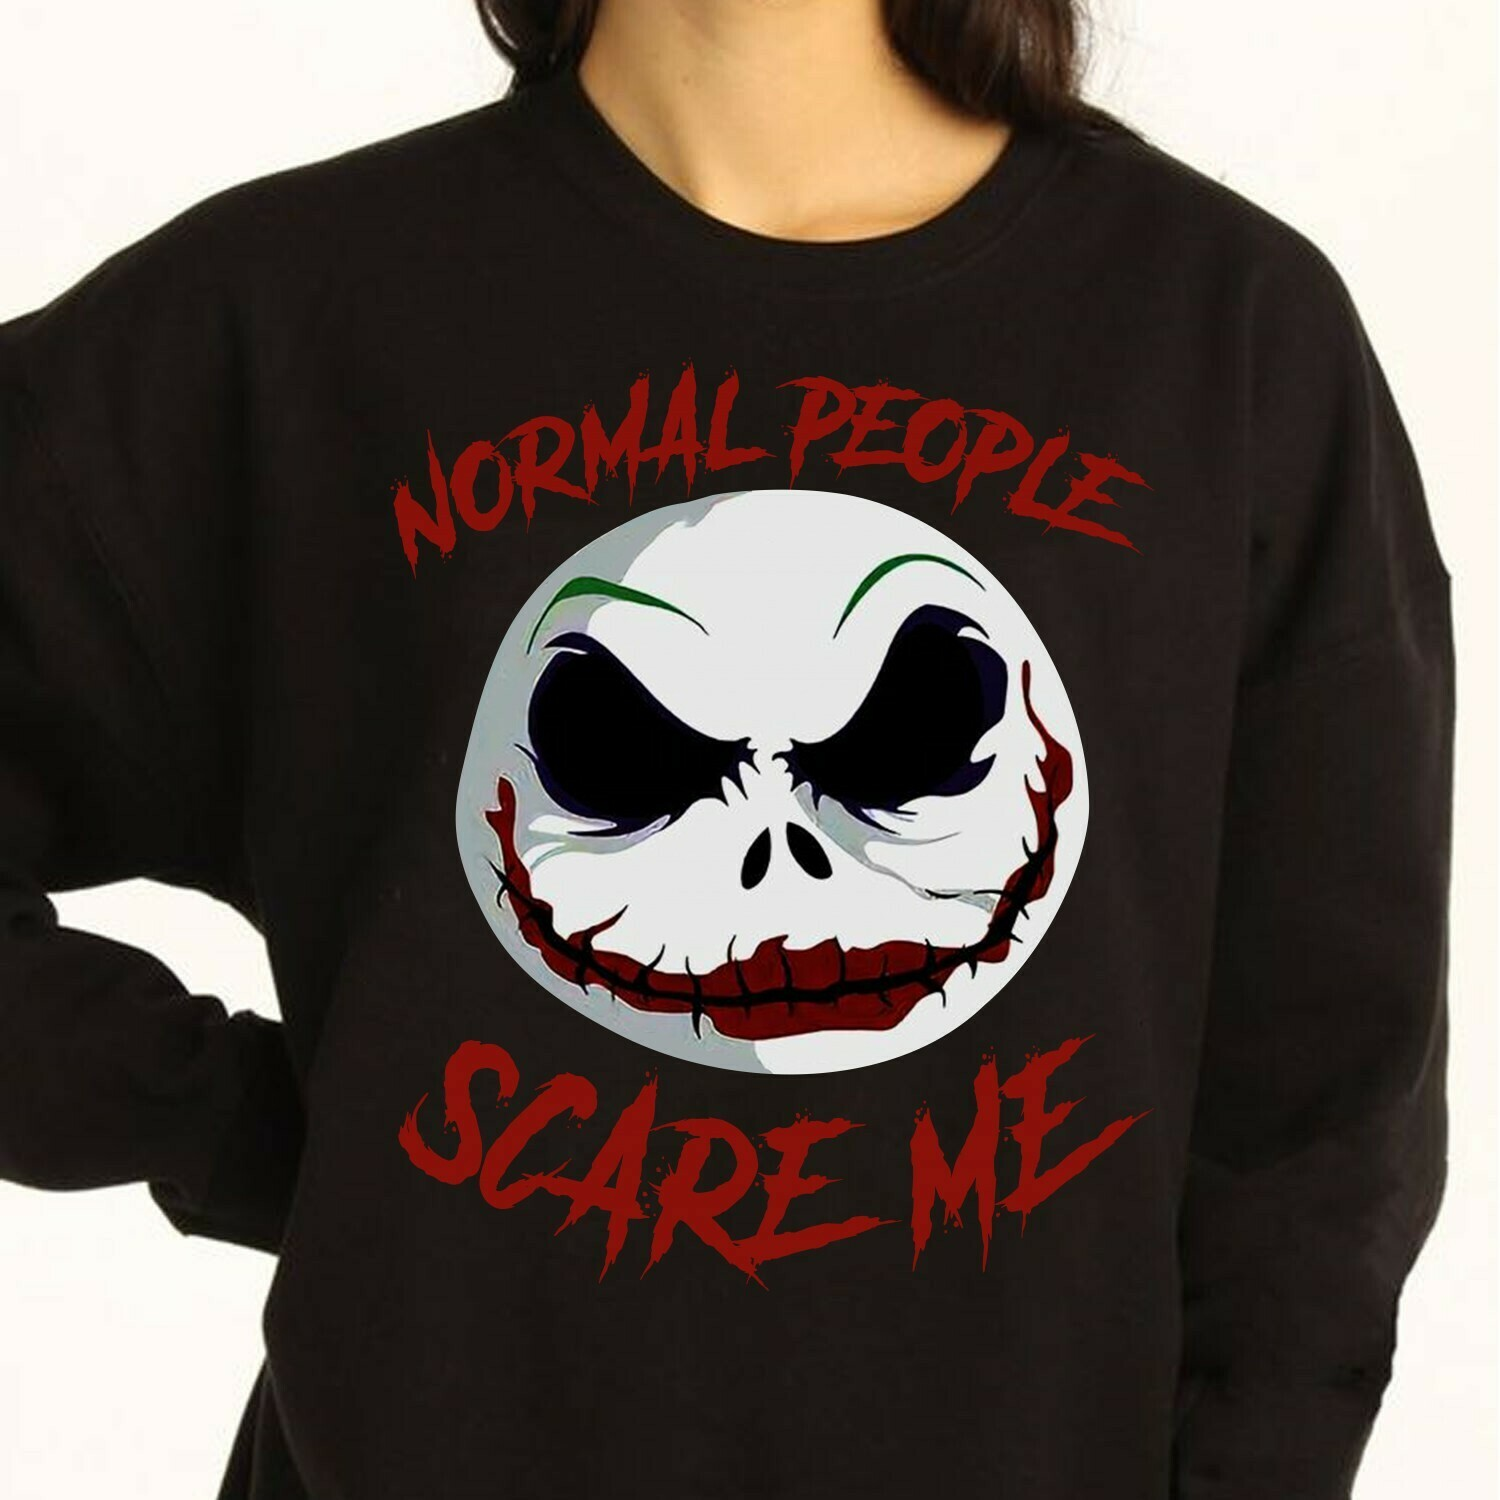 Jack Skellington Normal People Scare Me Inspired Joker Gifts For Fans Your Favorite Super Villain Halloween Horror Movie Mashup T-Shirt Long Sleeve Sweatshirt Hoodie Jolly Family Gifts